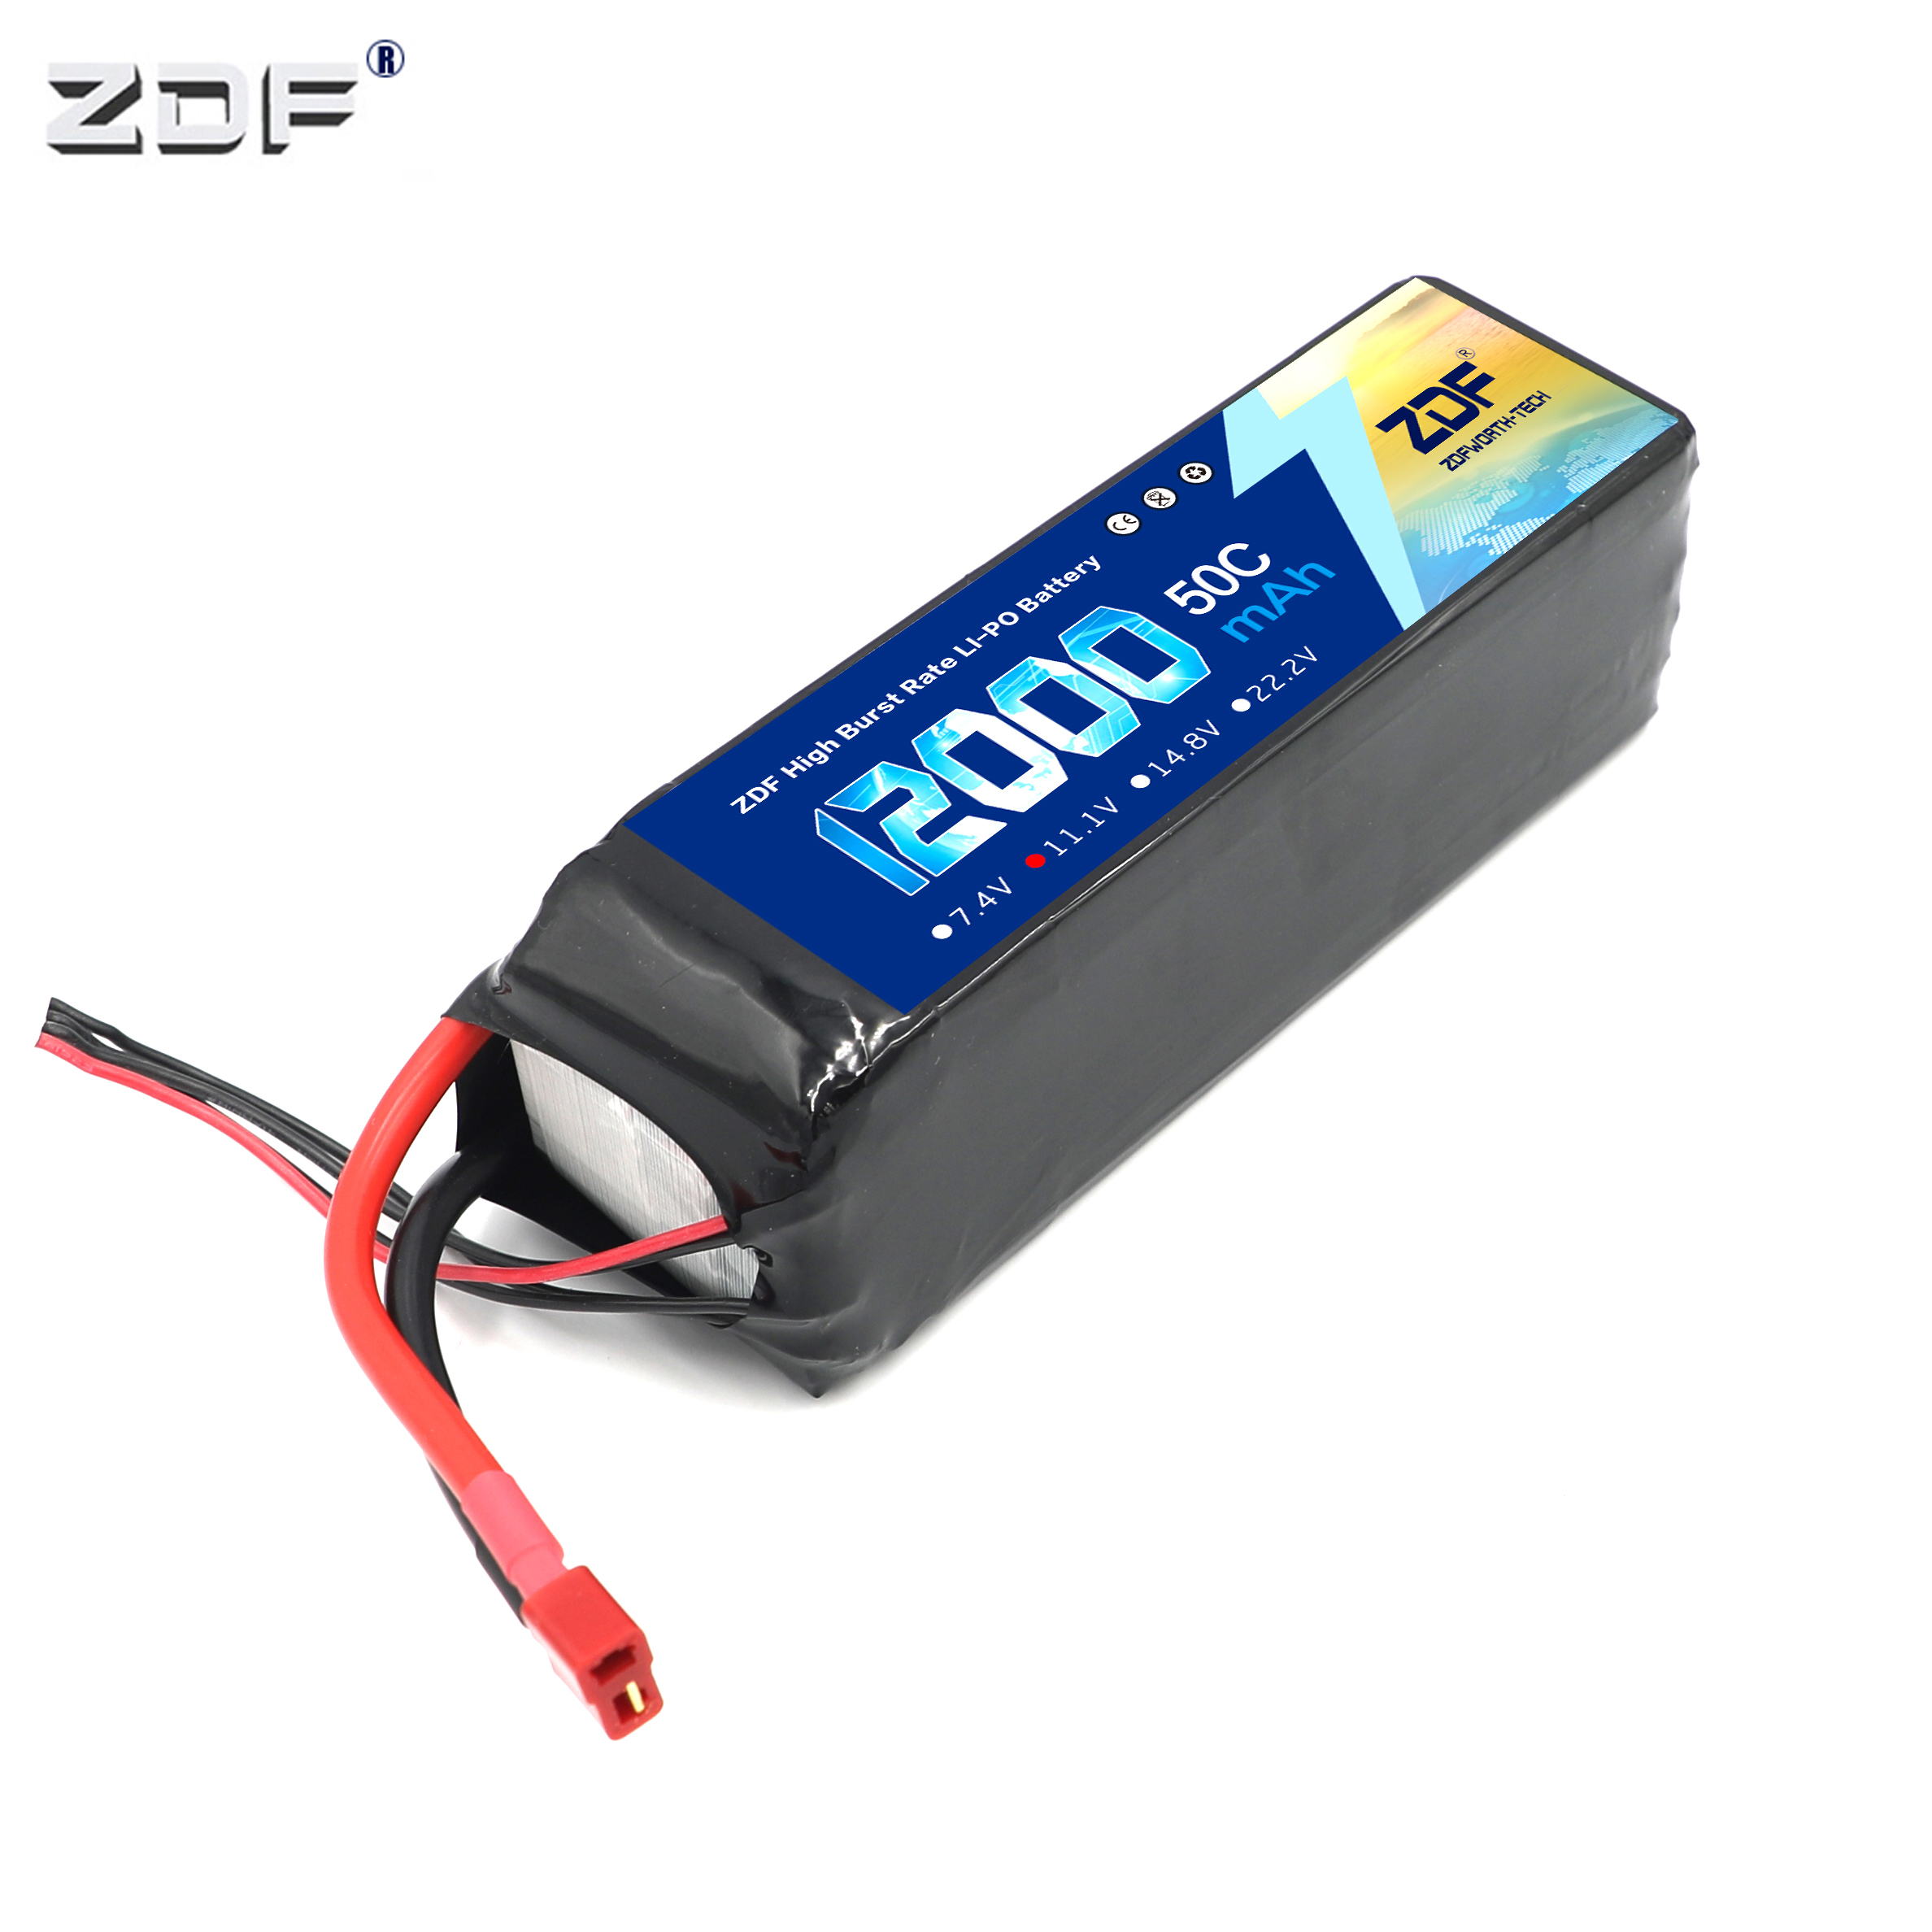 ZDF <font><b>3S</b></font> 11.1V <font><b>12000mAh</b></font> 50C/100C <font><b>LiPo</b></font> Battery pack for airplane Aerial multi - axis 1:8 1/8 RC Car four drive off-road RC Car Boat image